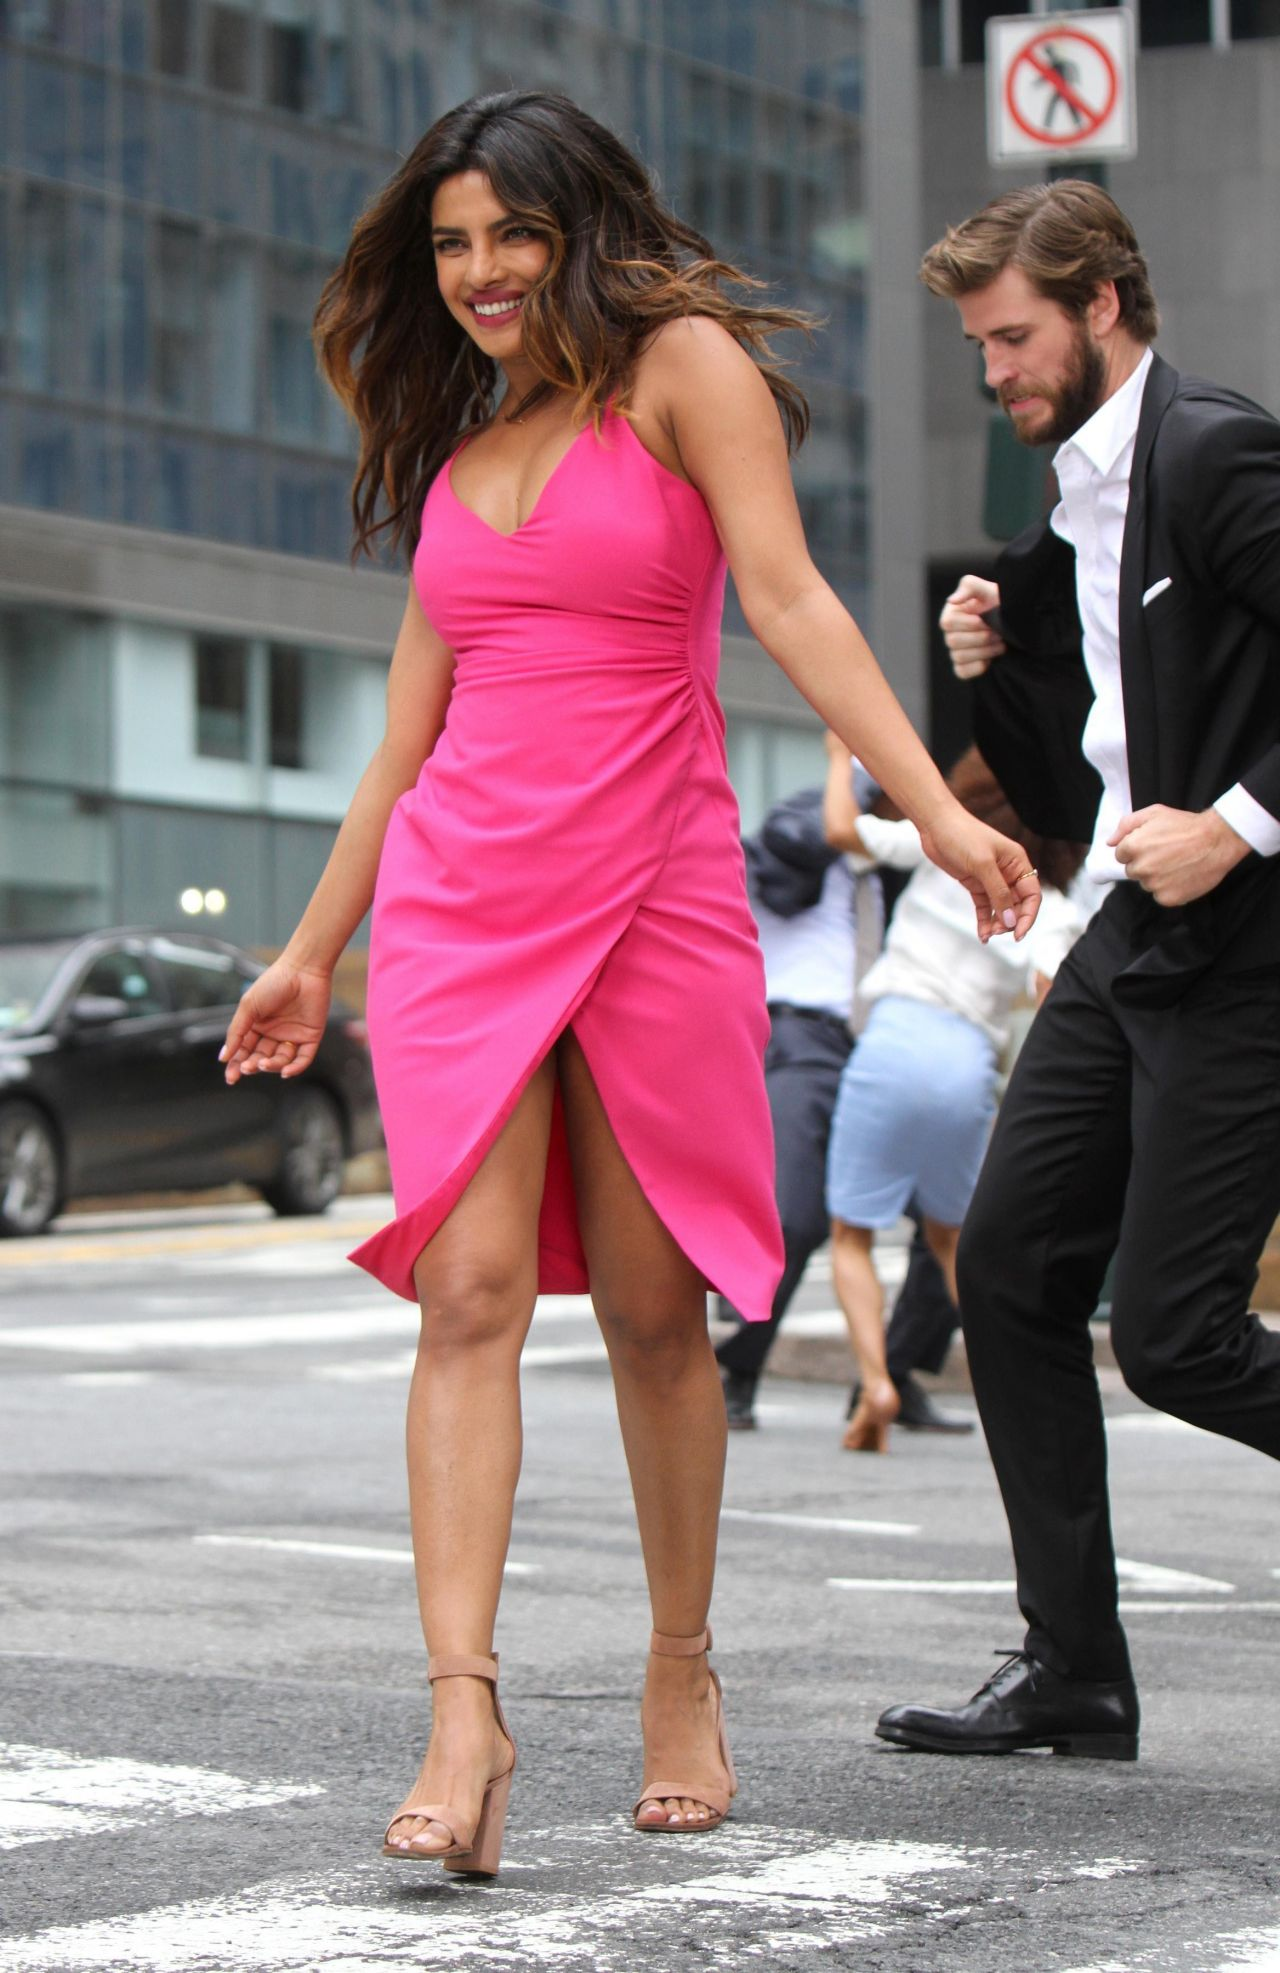 https://celebmafia.com/wp-content/uploads/2018/07/priyanka-chopra-liam-hemsworth-rebel-wilson-adam-devine-and-betty-gilpin-filming-a-dance-scene-for-isn-t-it-romantic-in-ny-2.jpg